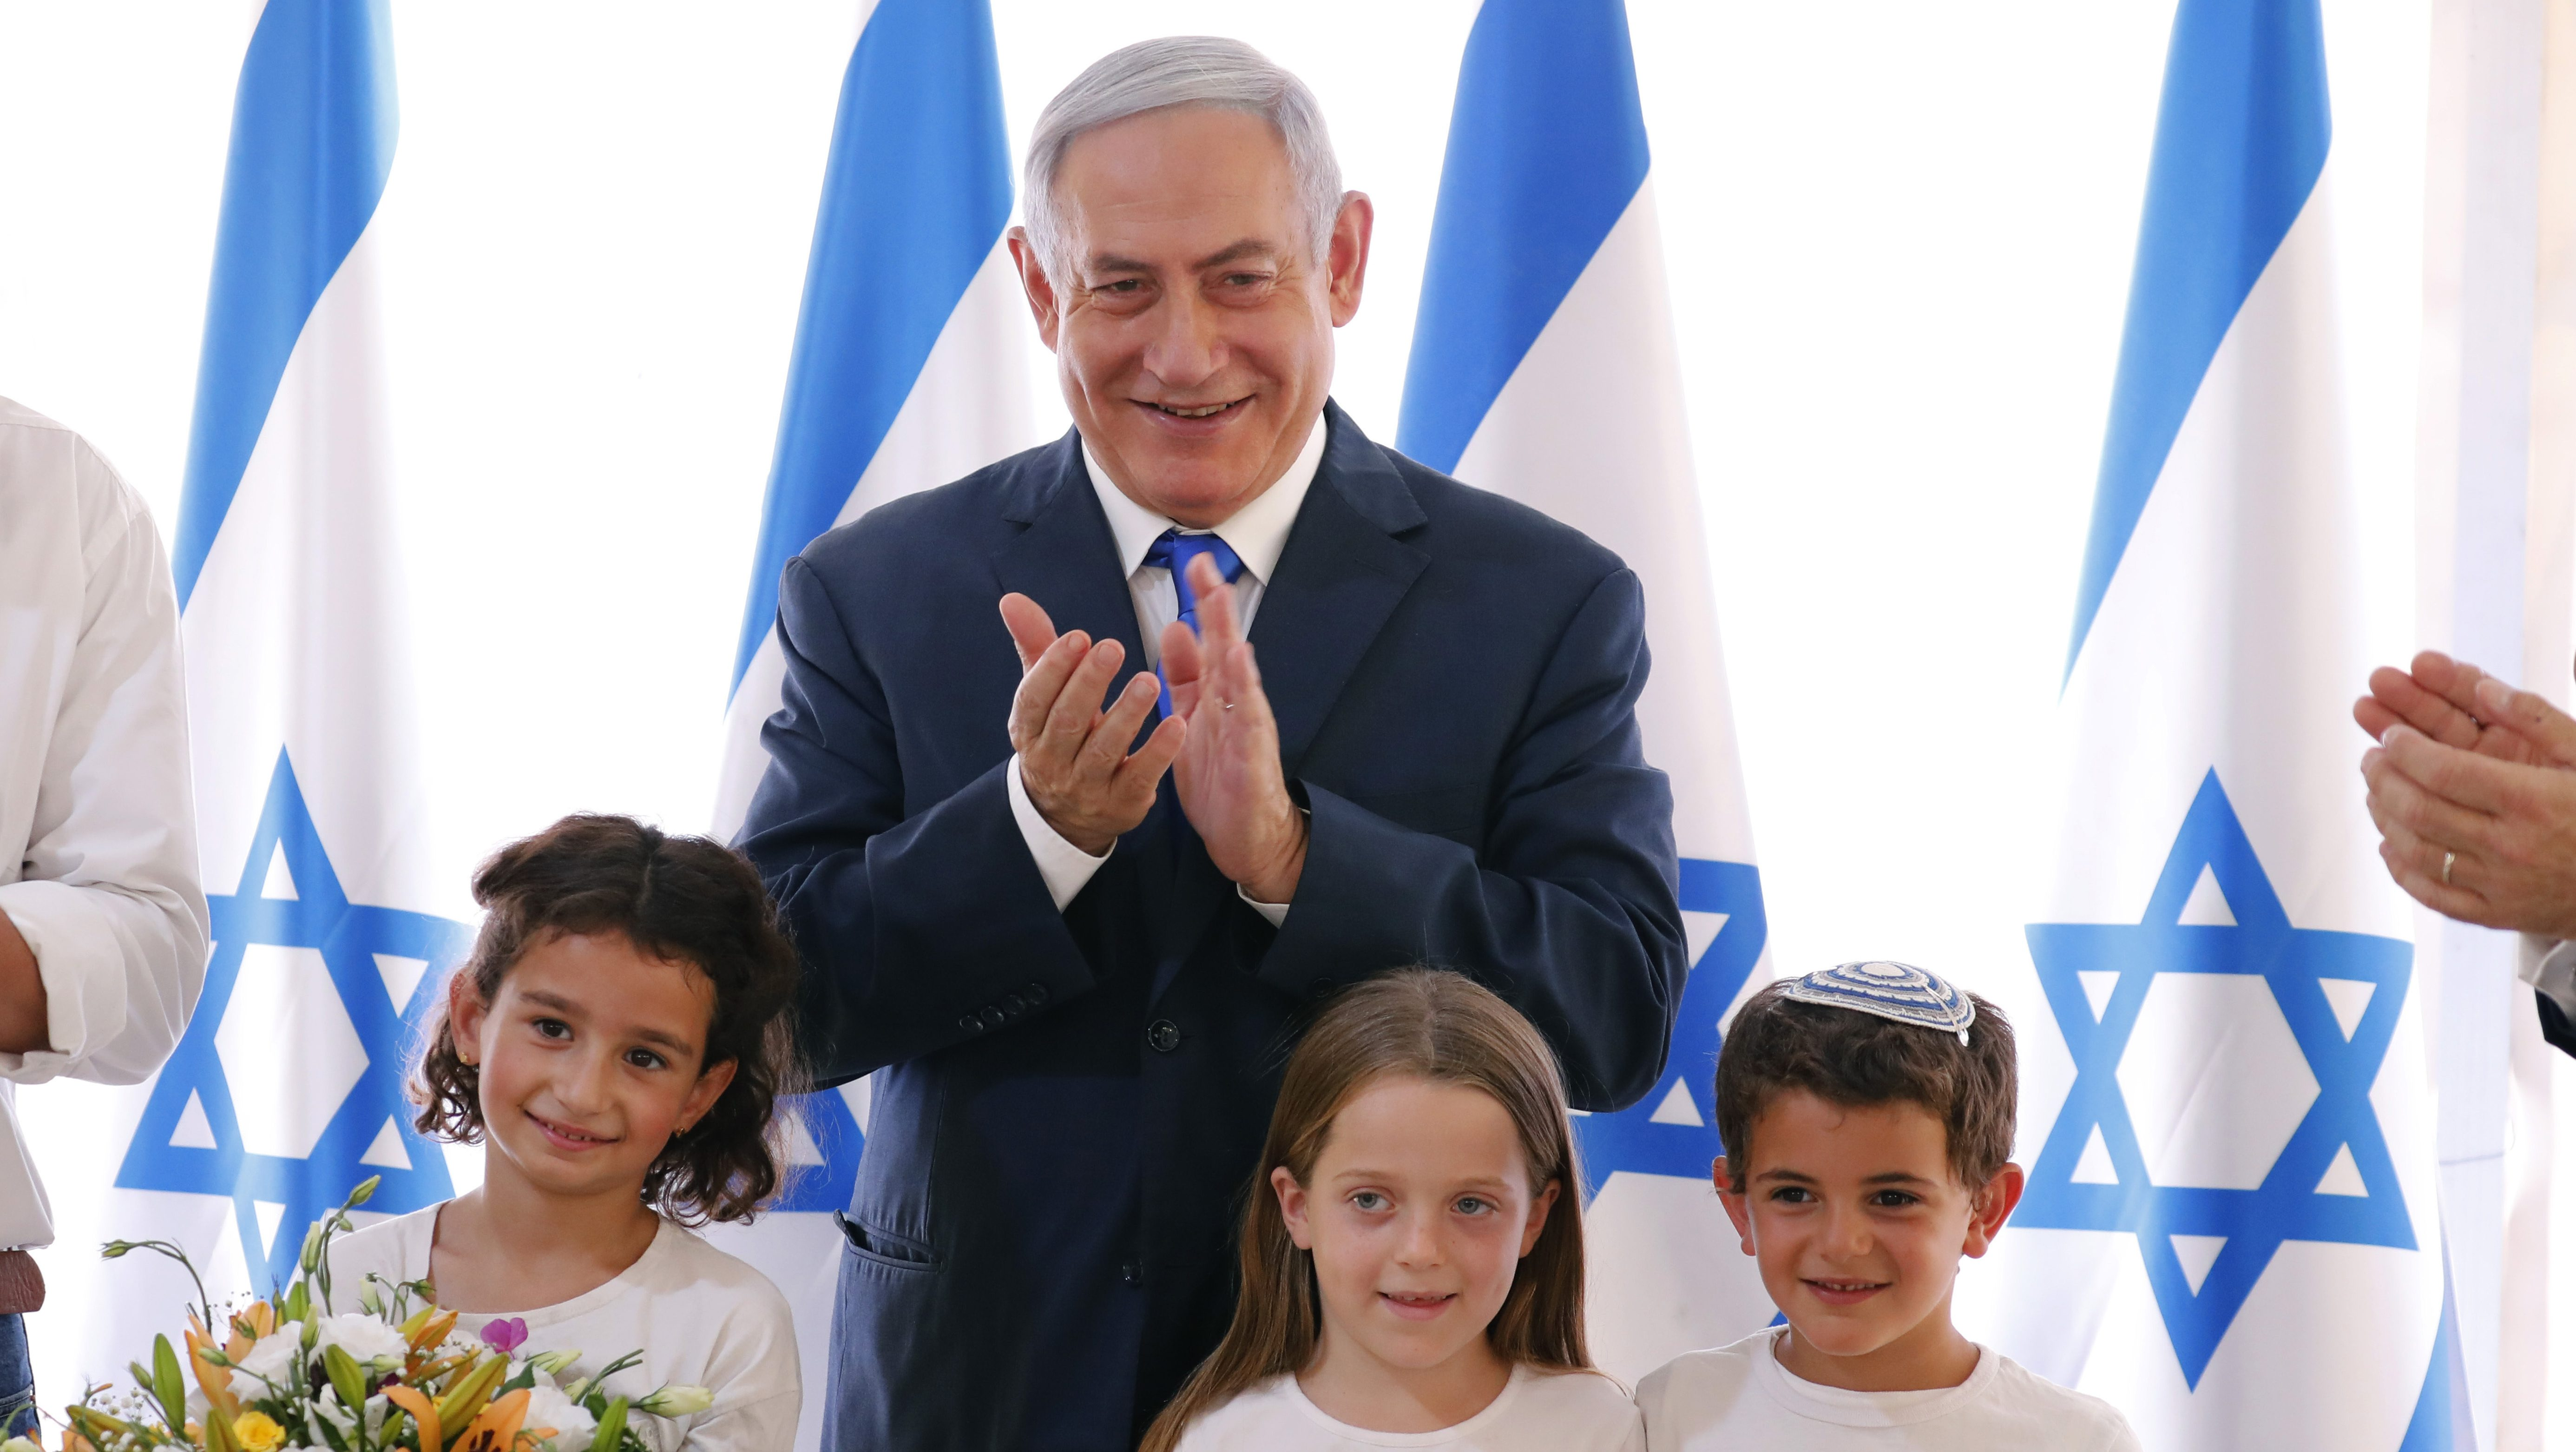 Netanyahu presented with a gift by children in the Jordan Valley. He held a cabinet meeting there last week—and has promised to annex if the area if re-elected.